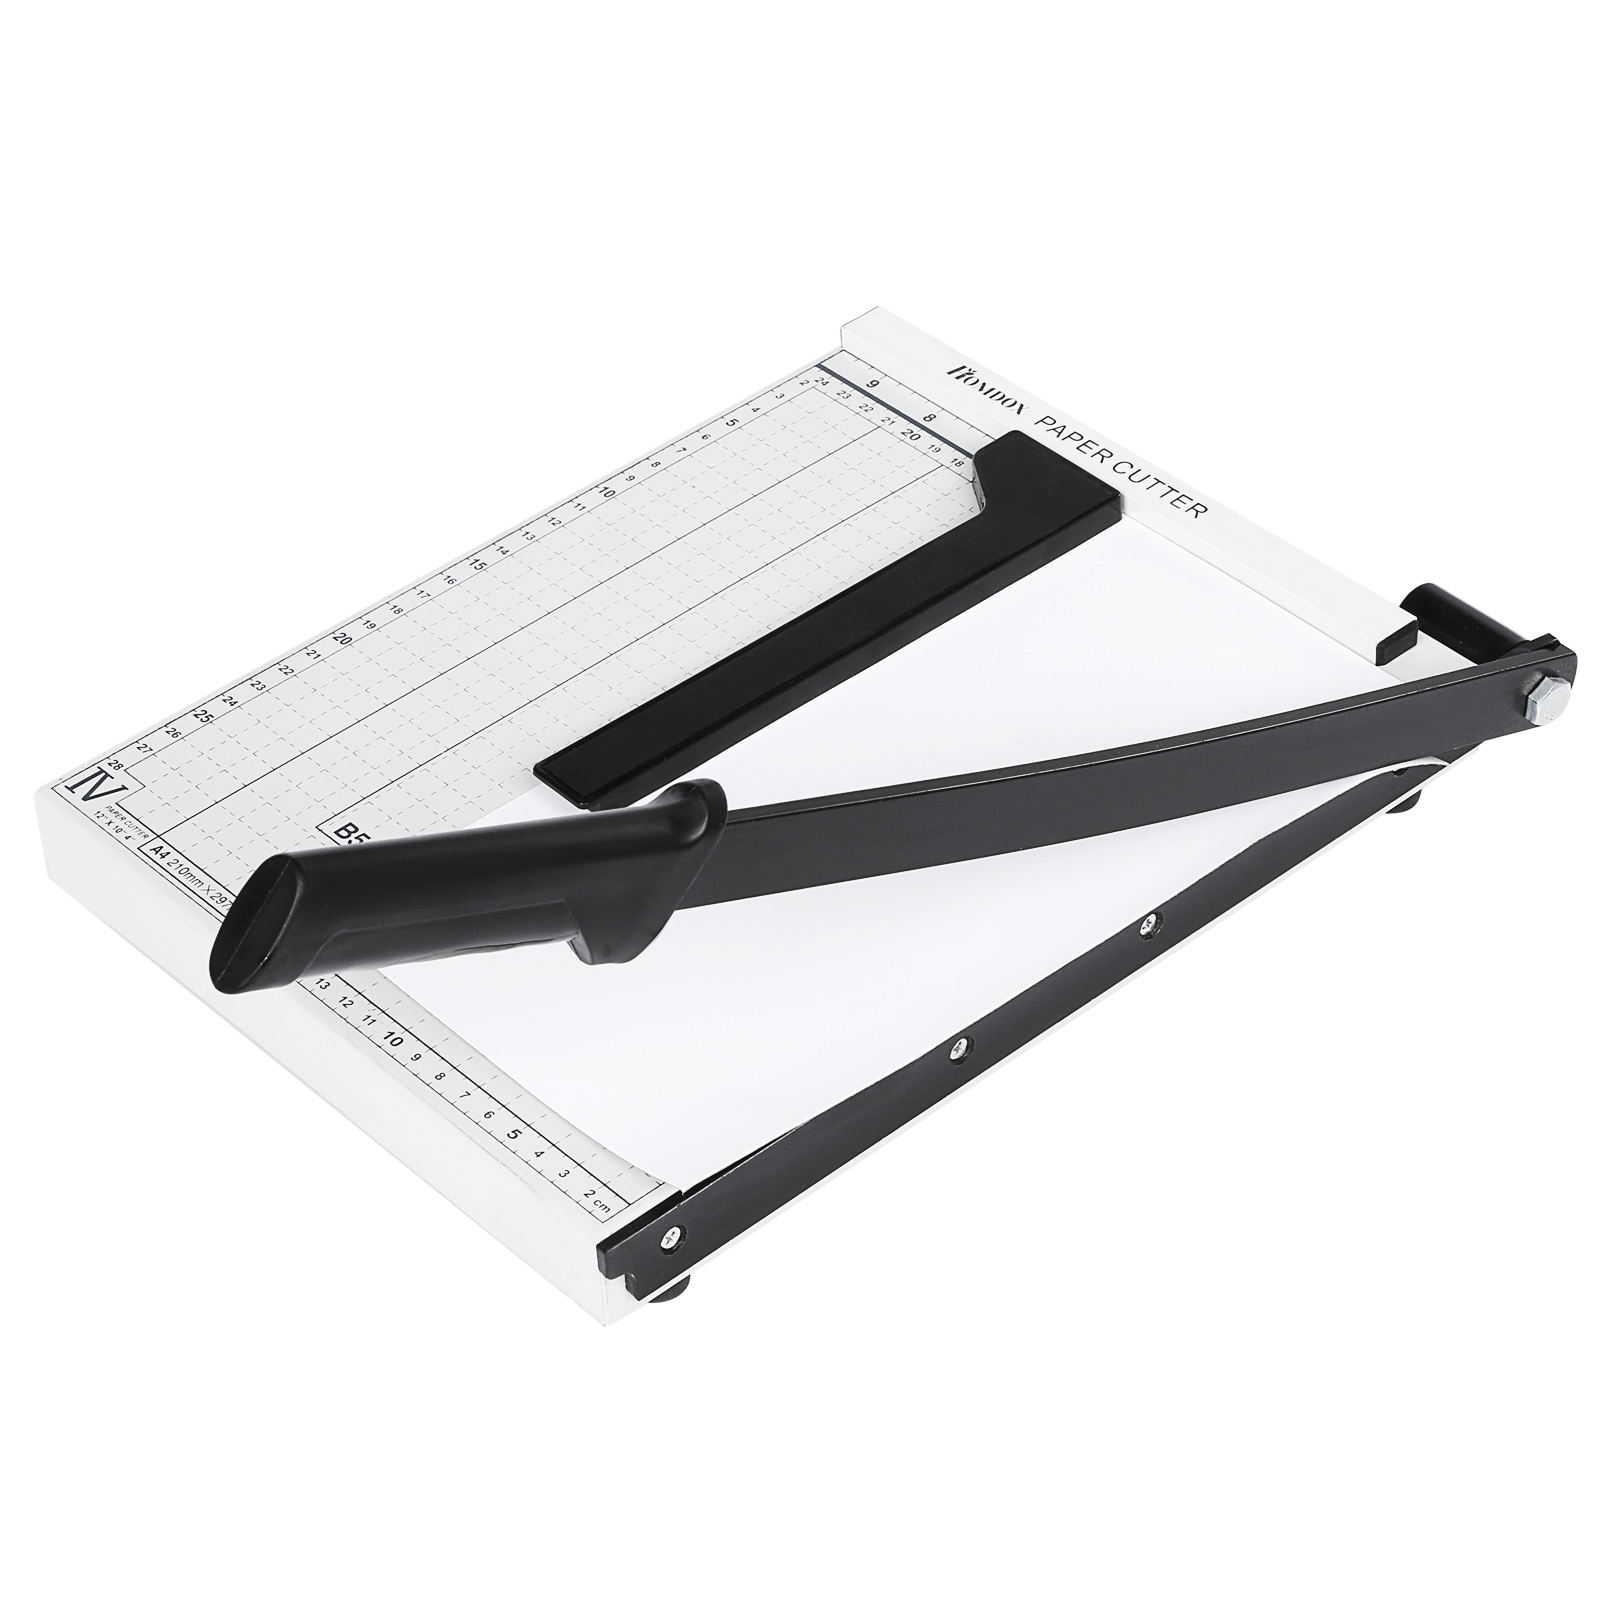 professional paper cutter Quick navigation: best guillotine paper cutter best heavy duty paper cutter best rotary paper cutter best paper cutter for card making paper cutters are useful tools for any office or school environment but these machines can also be found in a hobbyist's workshop.